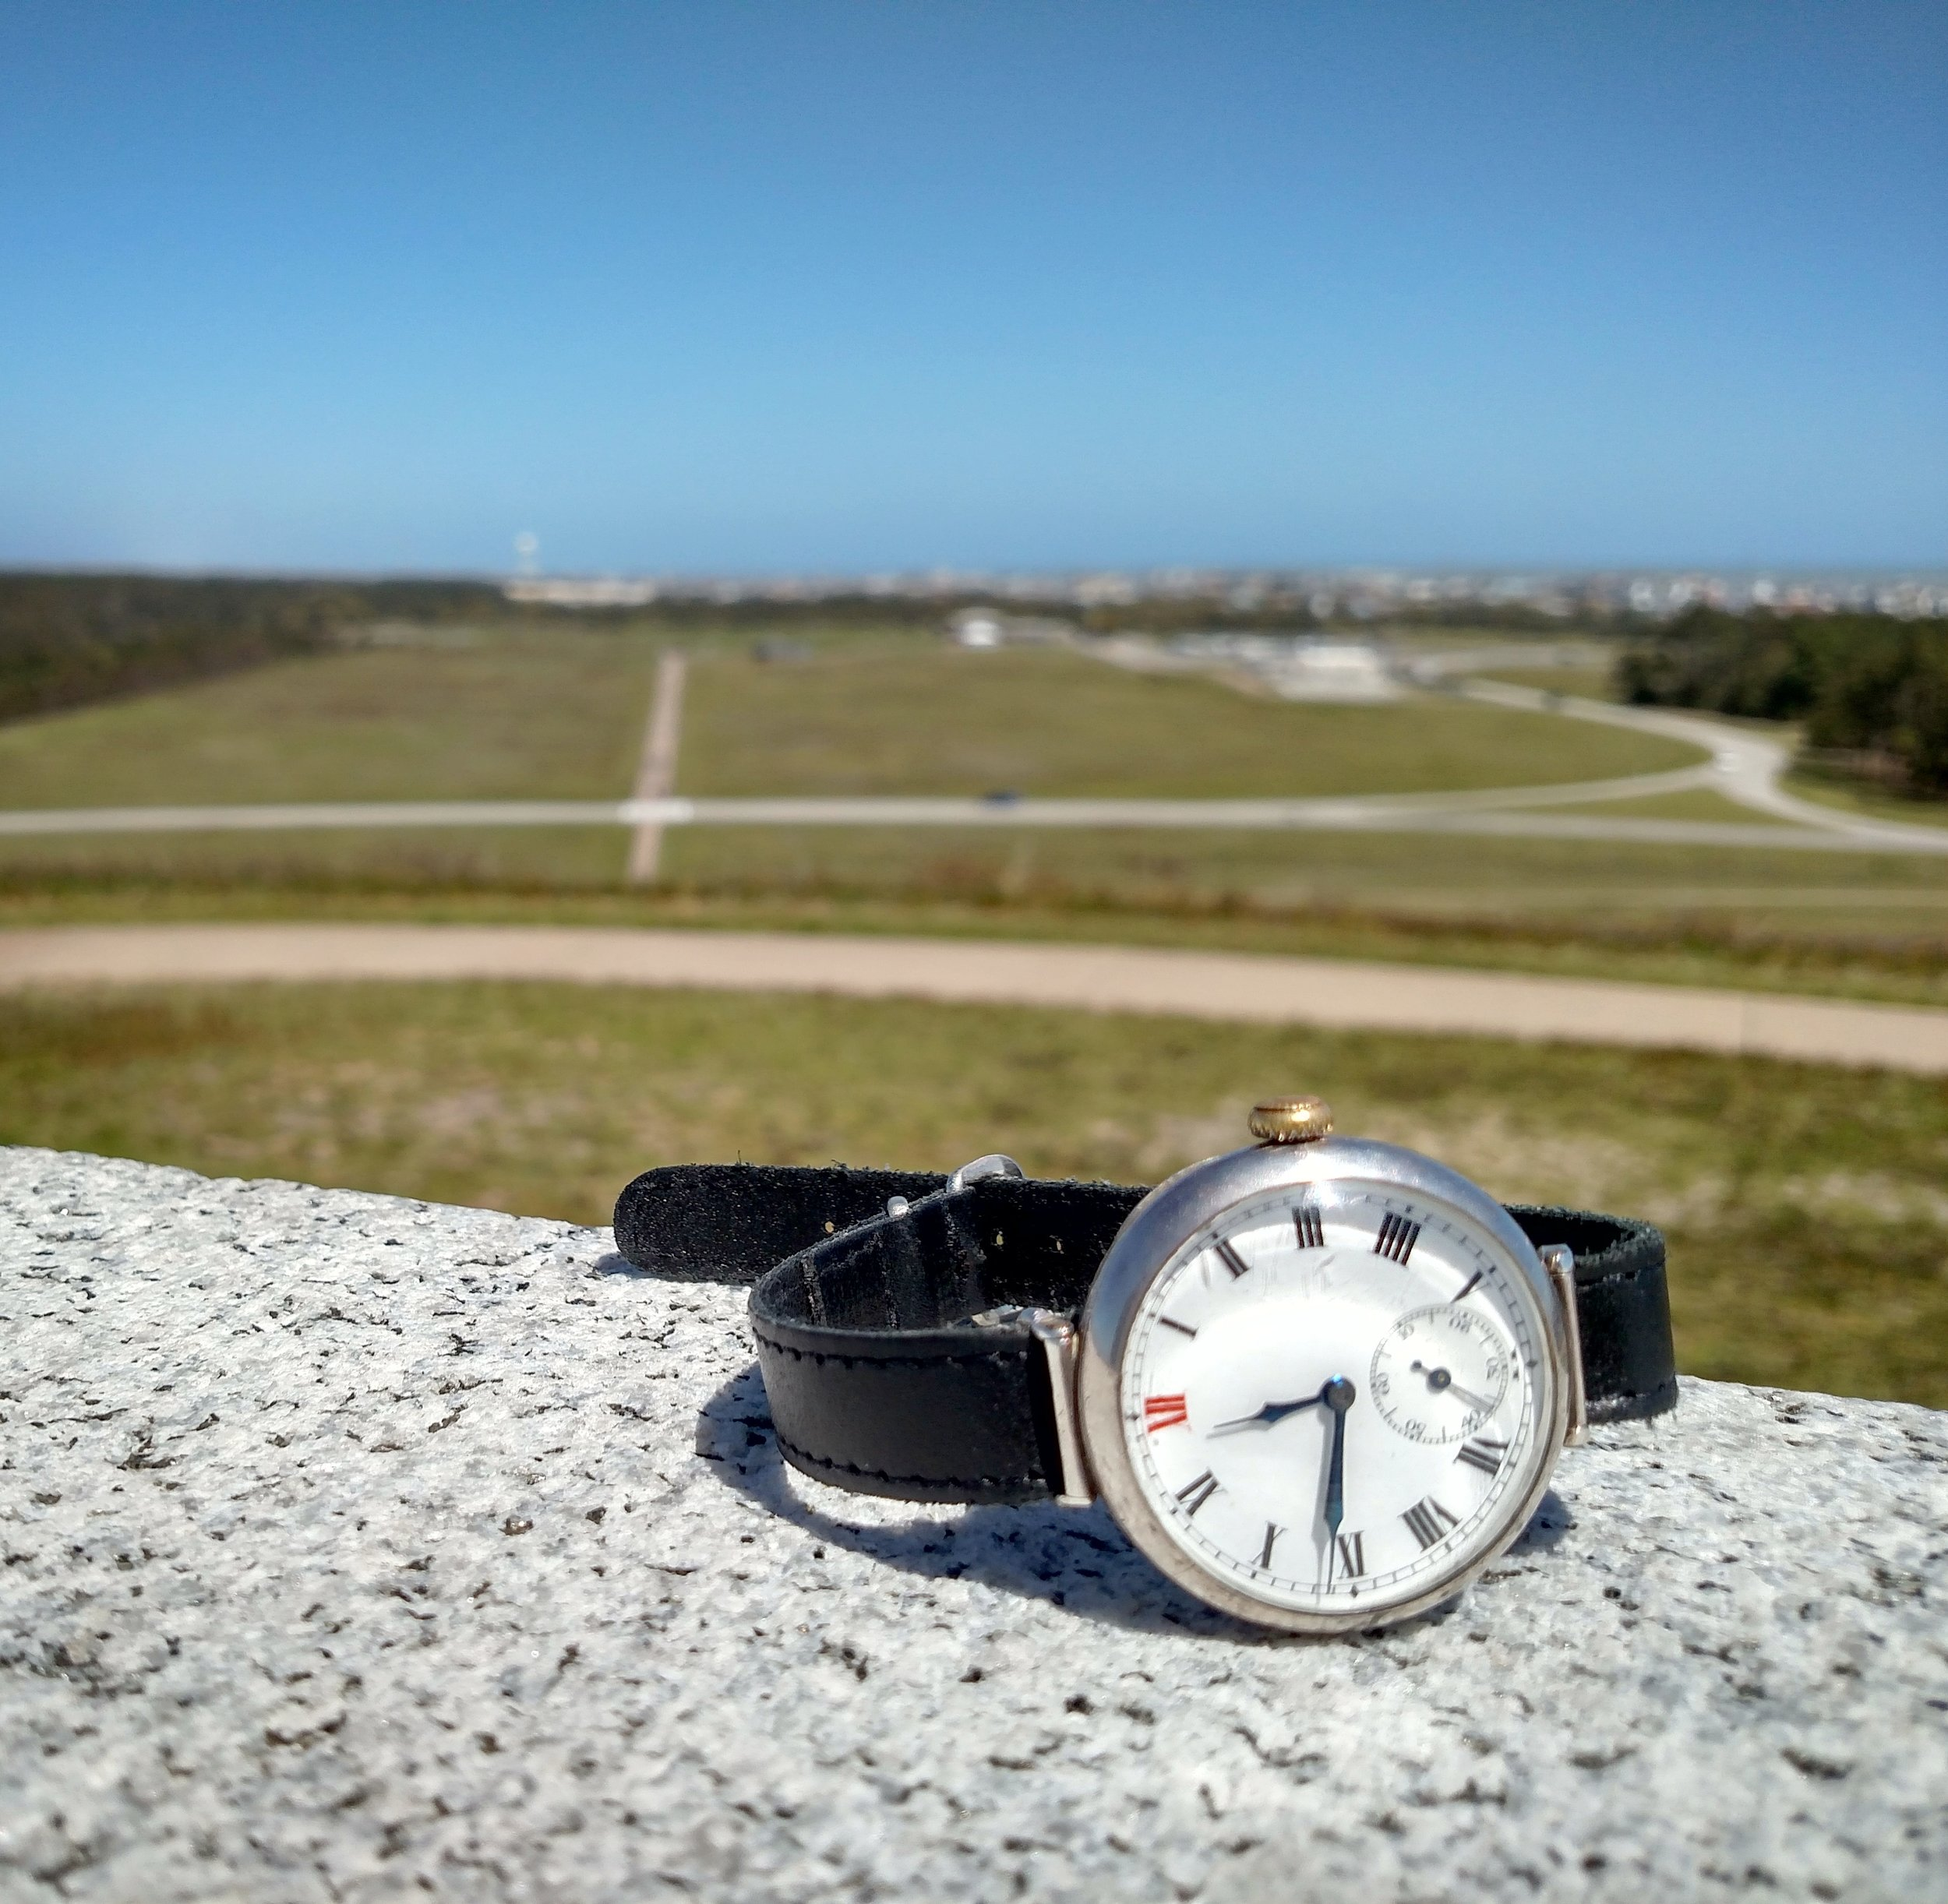 1923 Longines at the Wright Brothers National Memorial  Kill Devile Hills, Outer Banks, North Carolina